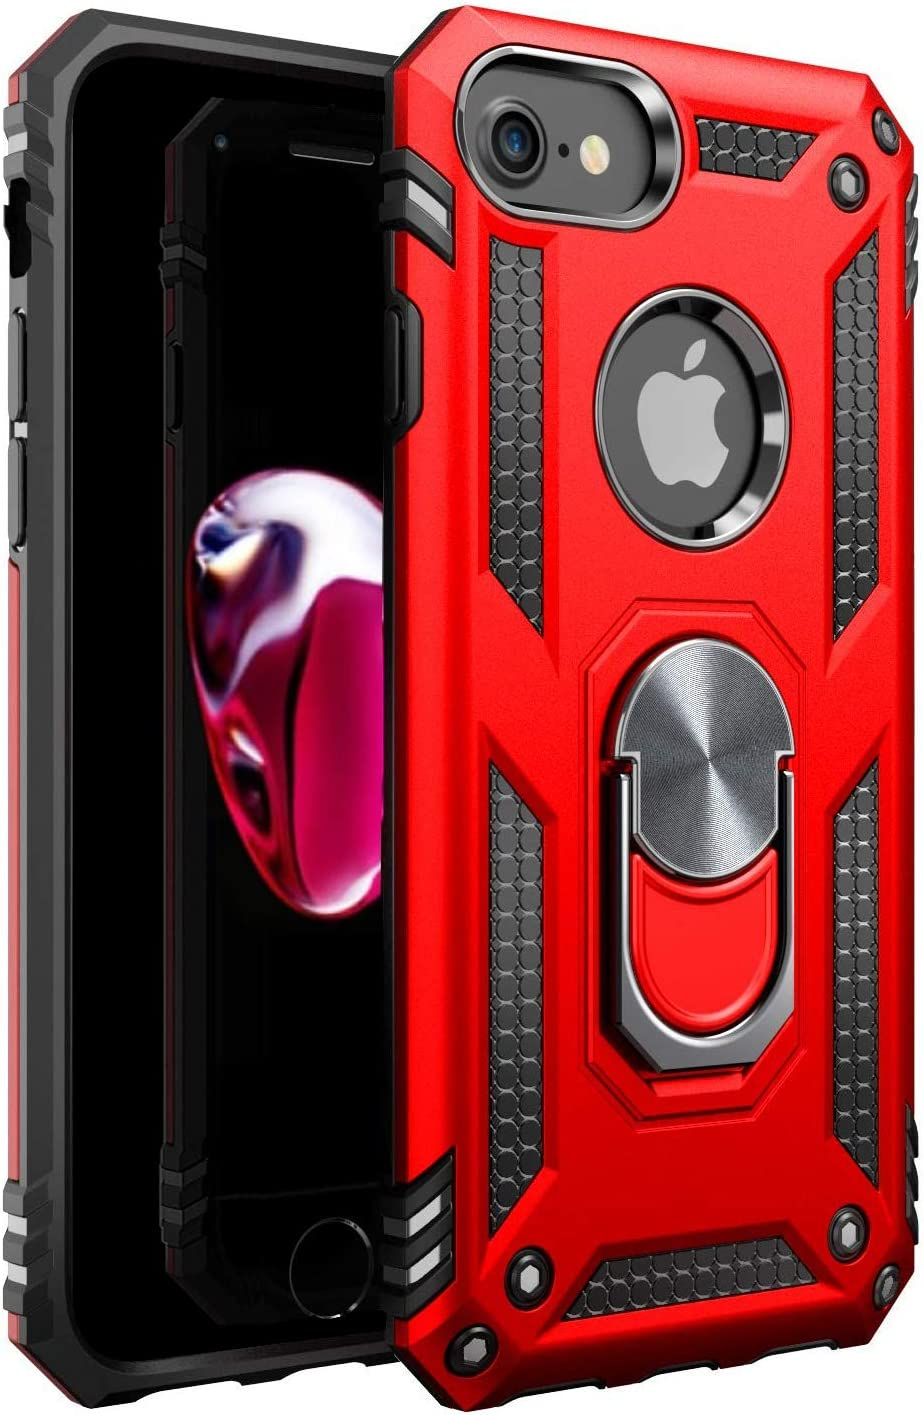 Amuoc iPhone 7 Case | iPhone 8 Case [ Military Grade ] 15ft. Drop Tested Protective Case | Kickstand | Compatible with Apple iPhone 8 / iPhone 7 - RED